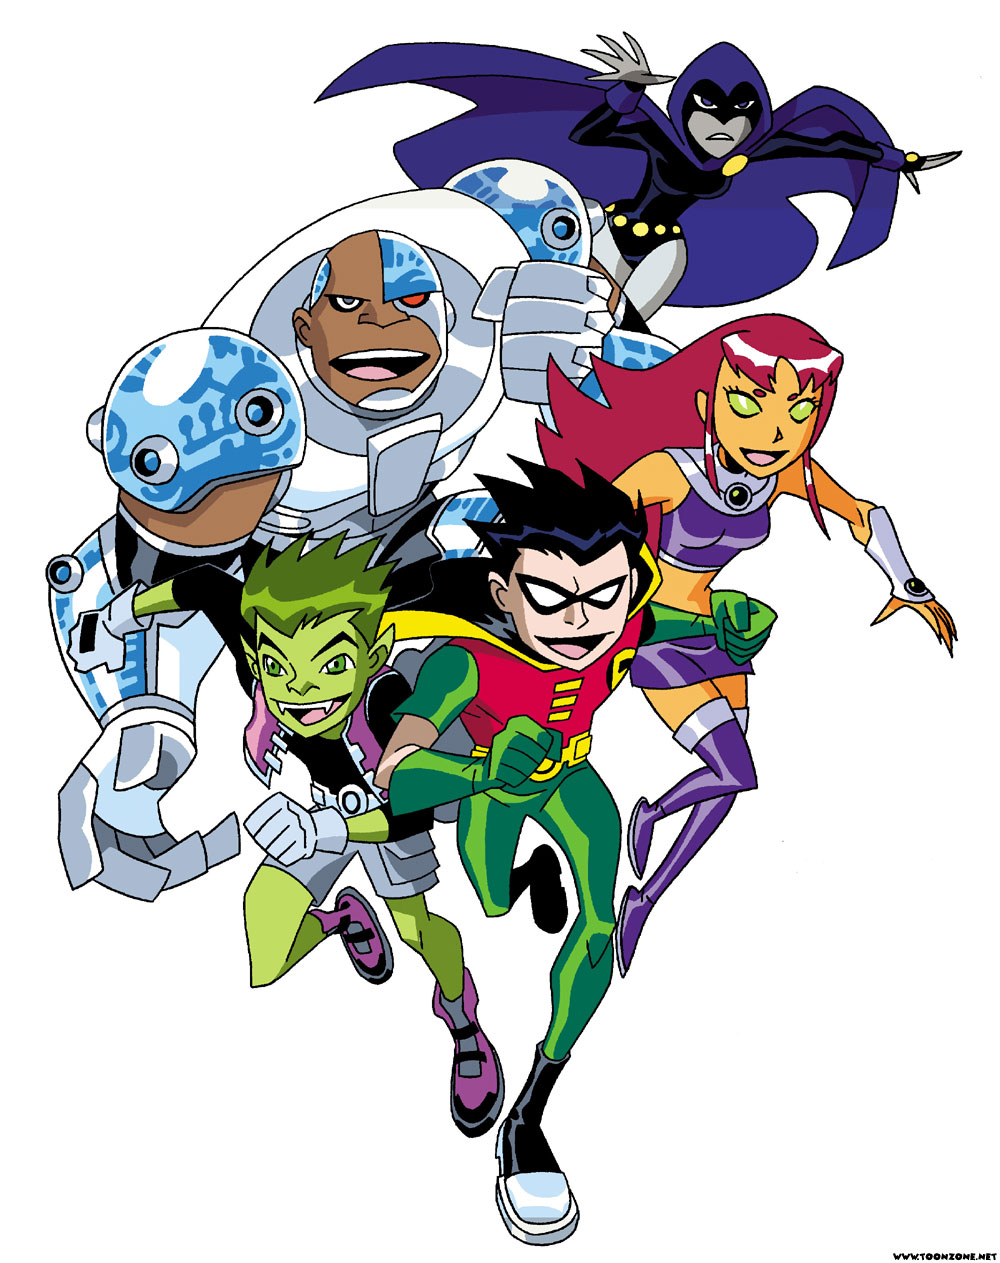 While WB continues to screw up Supes, the Teen Titans go animated.